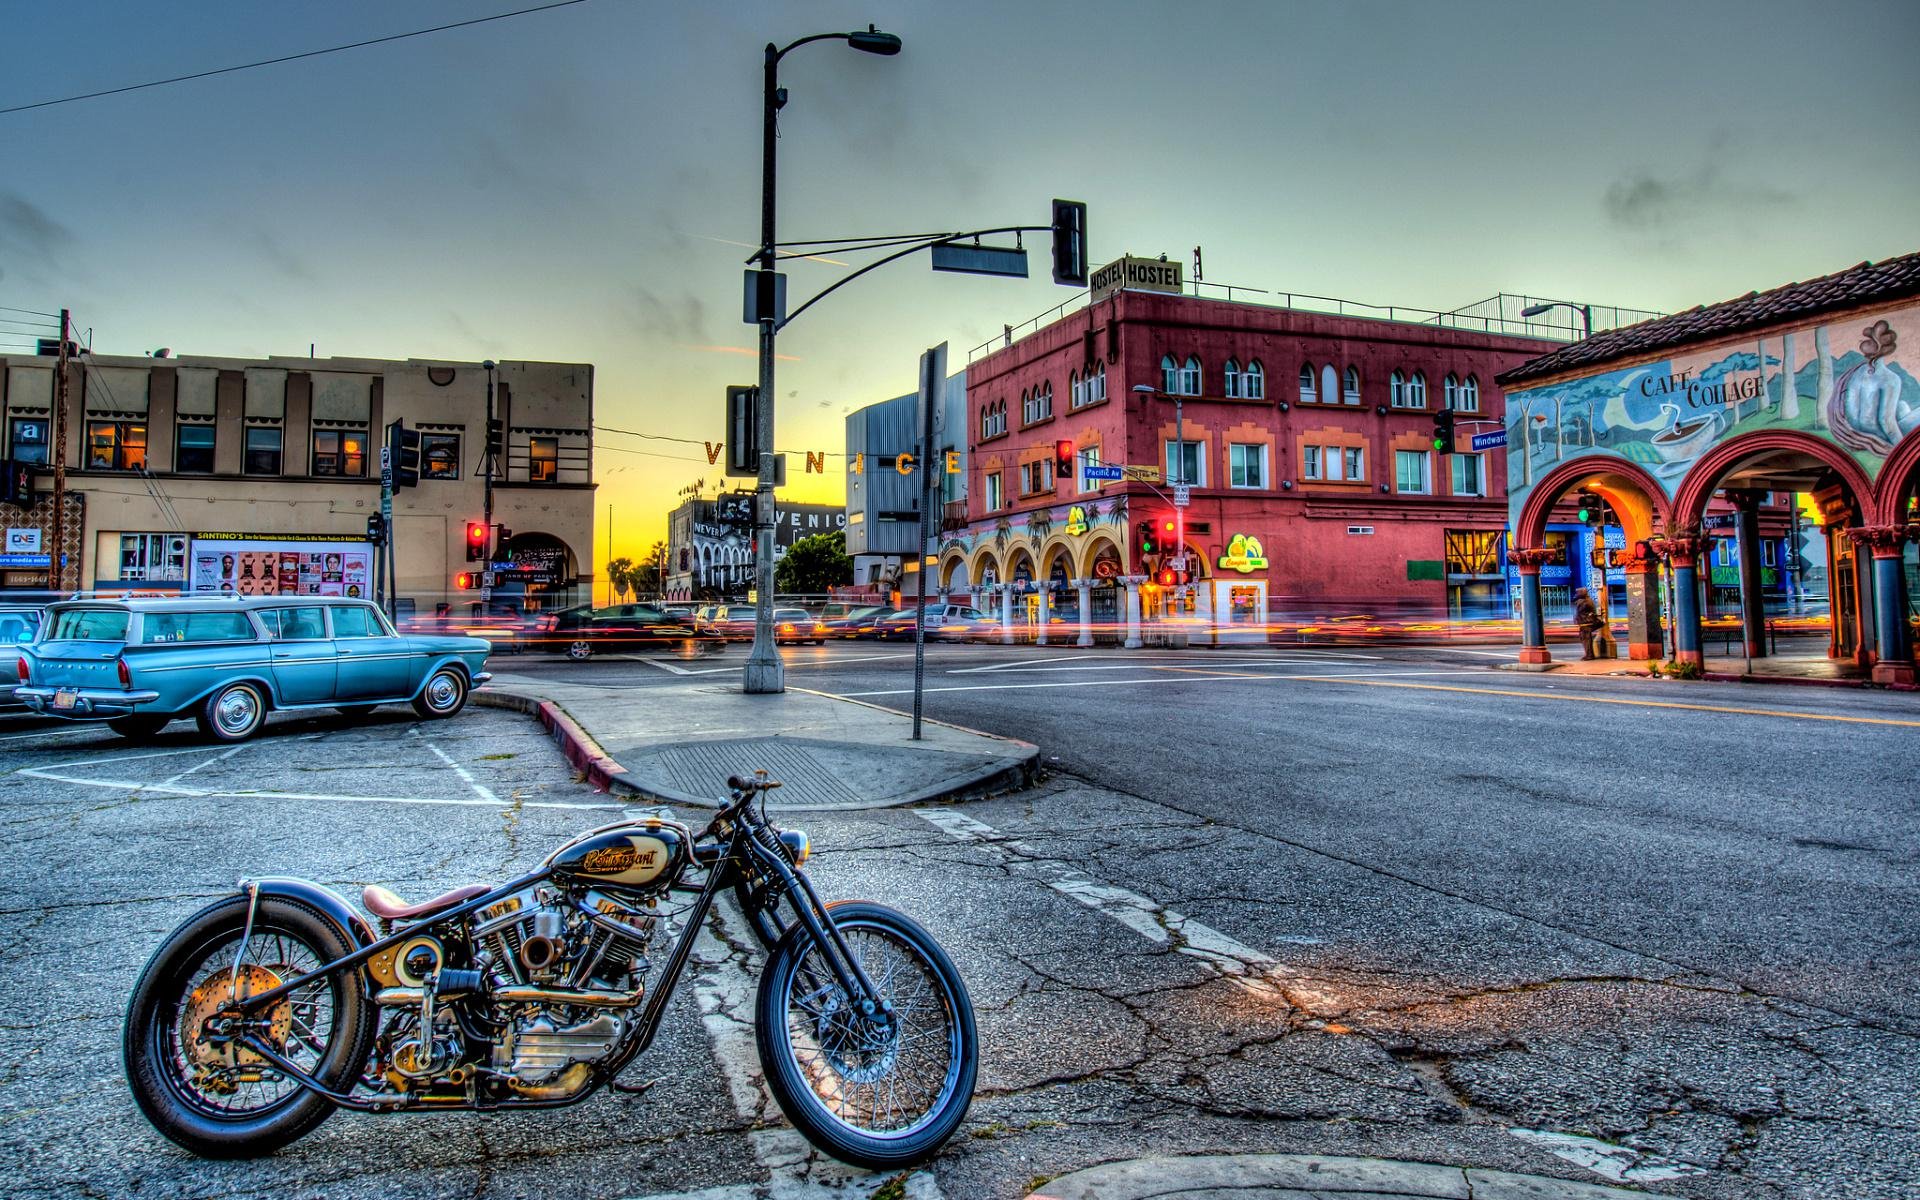 Venice california hdr   129696   High Quality and Resolution 1920x1200